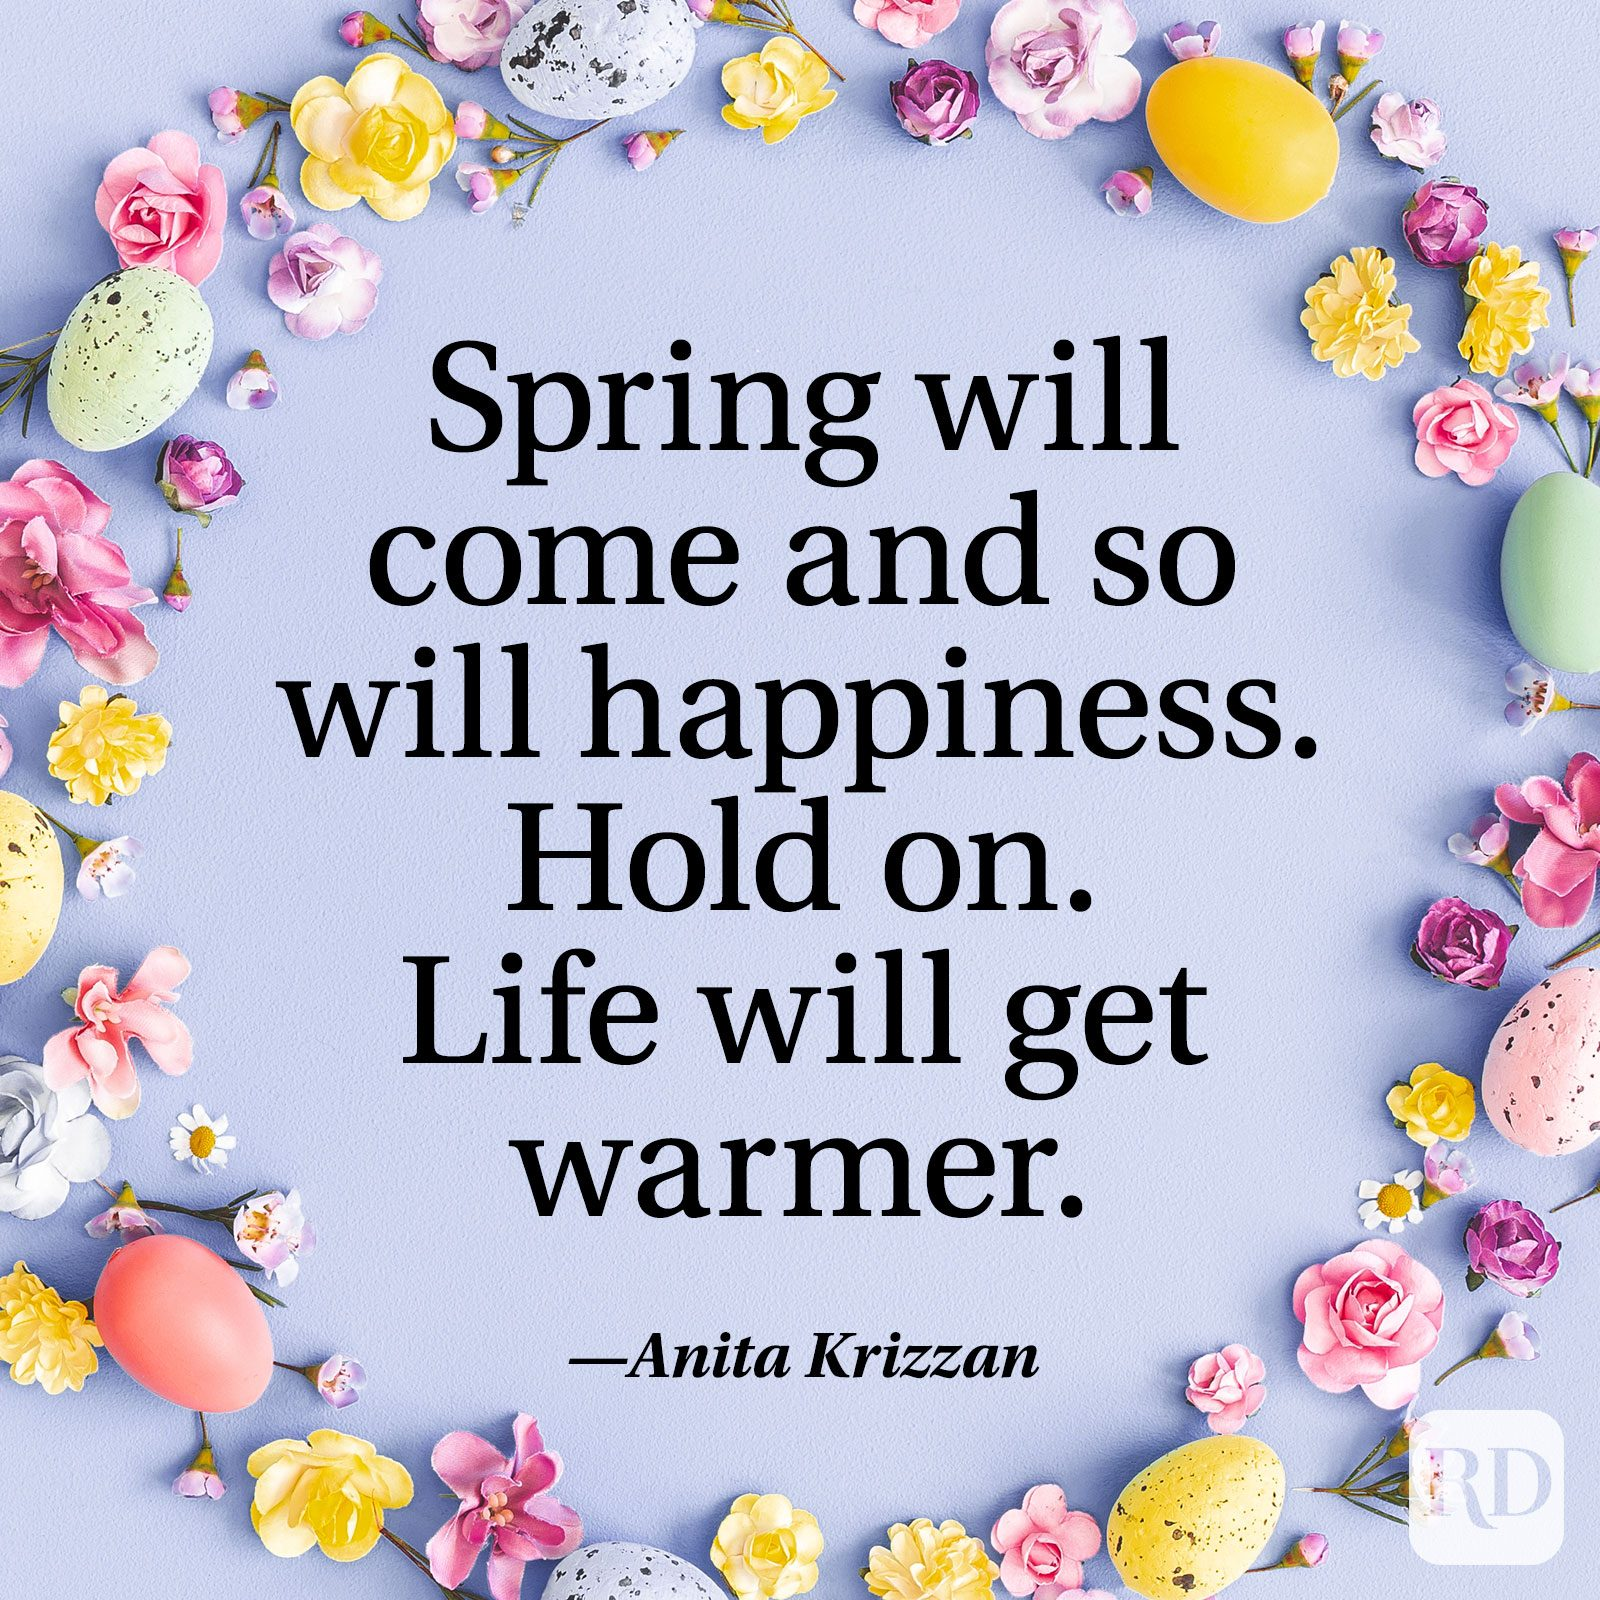 """Spring will come and so will happiness. Hold on. Life will get warmer."" — Anita Krizzan"